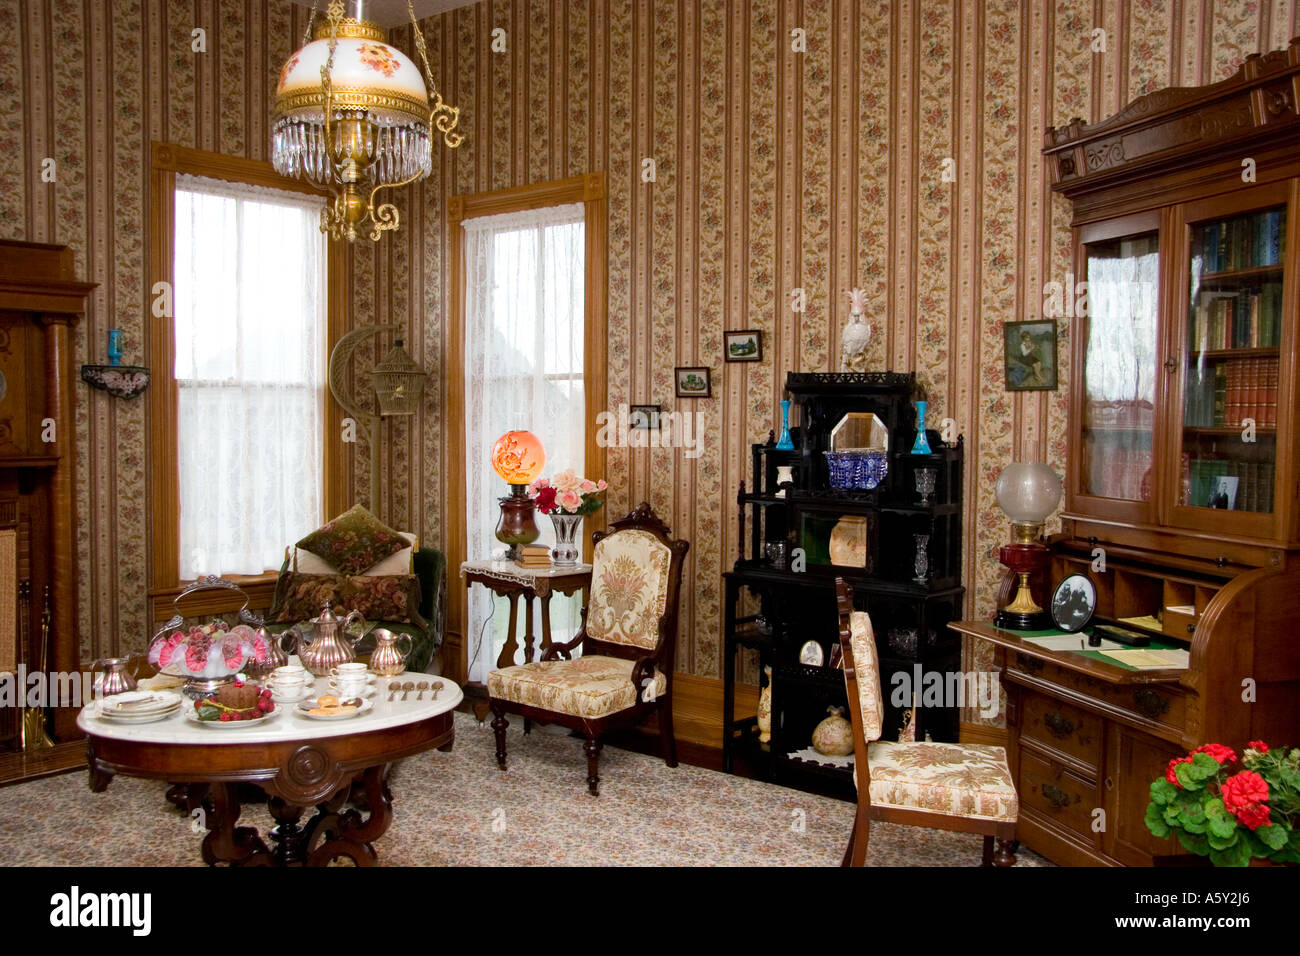 Victorian Living Room Furnishings Lace Curtains Glass Lamps Nineteenth Century Texas Country Home